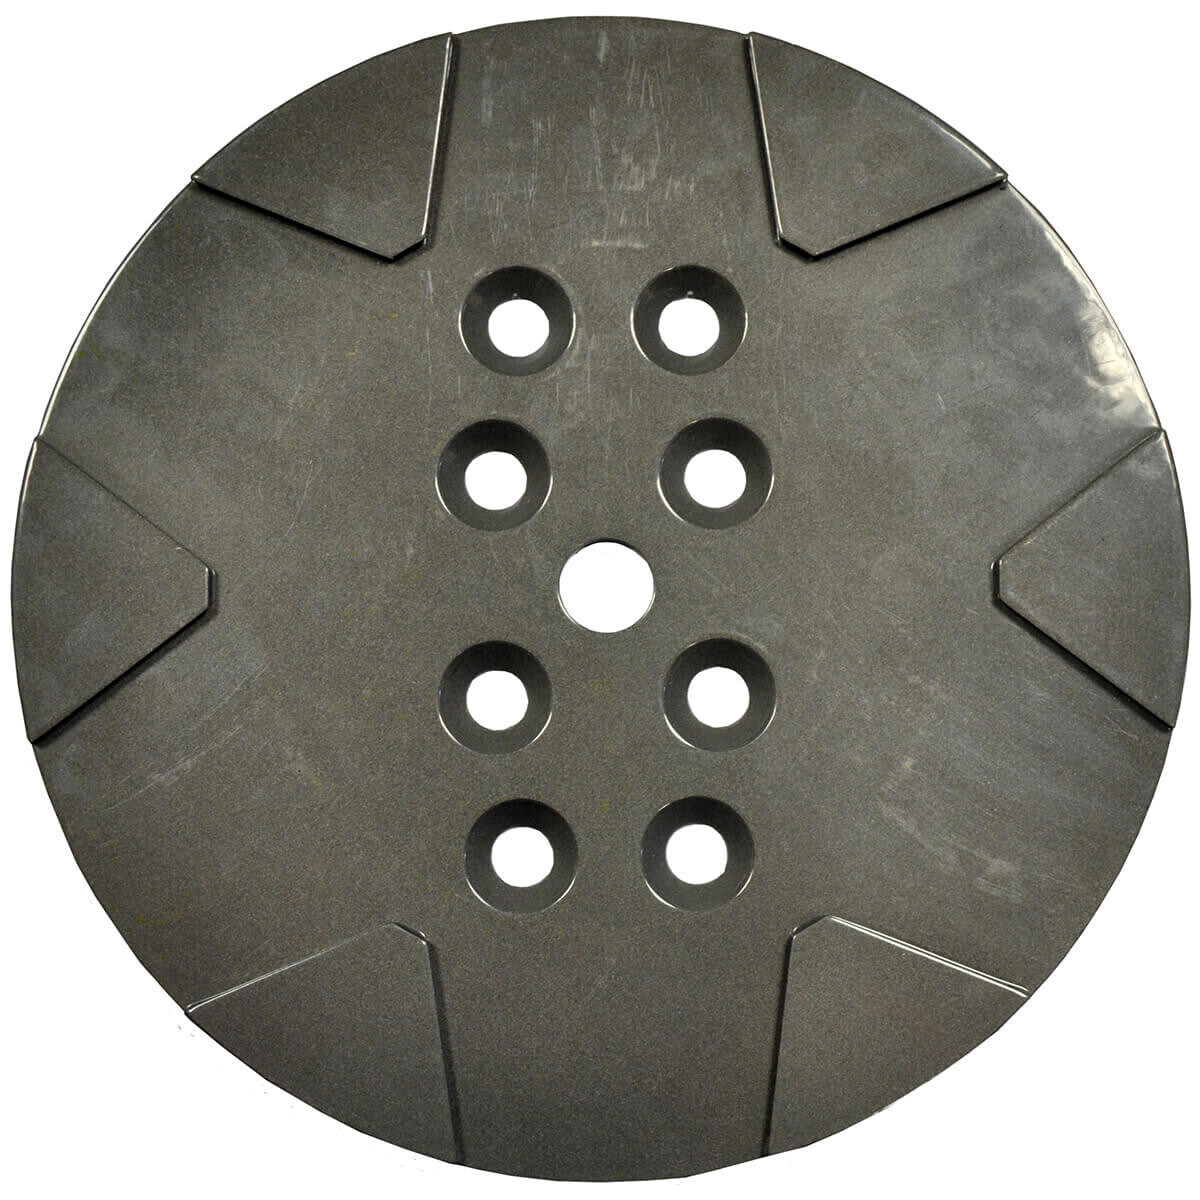 6 Segment Quick Release Plate 350.5660 For use with Trelawny QR Diamond tooling